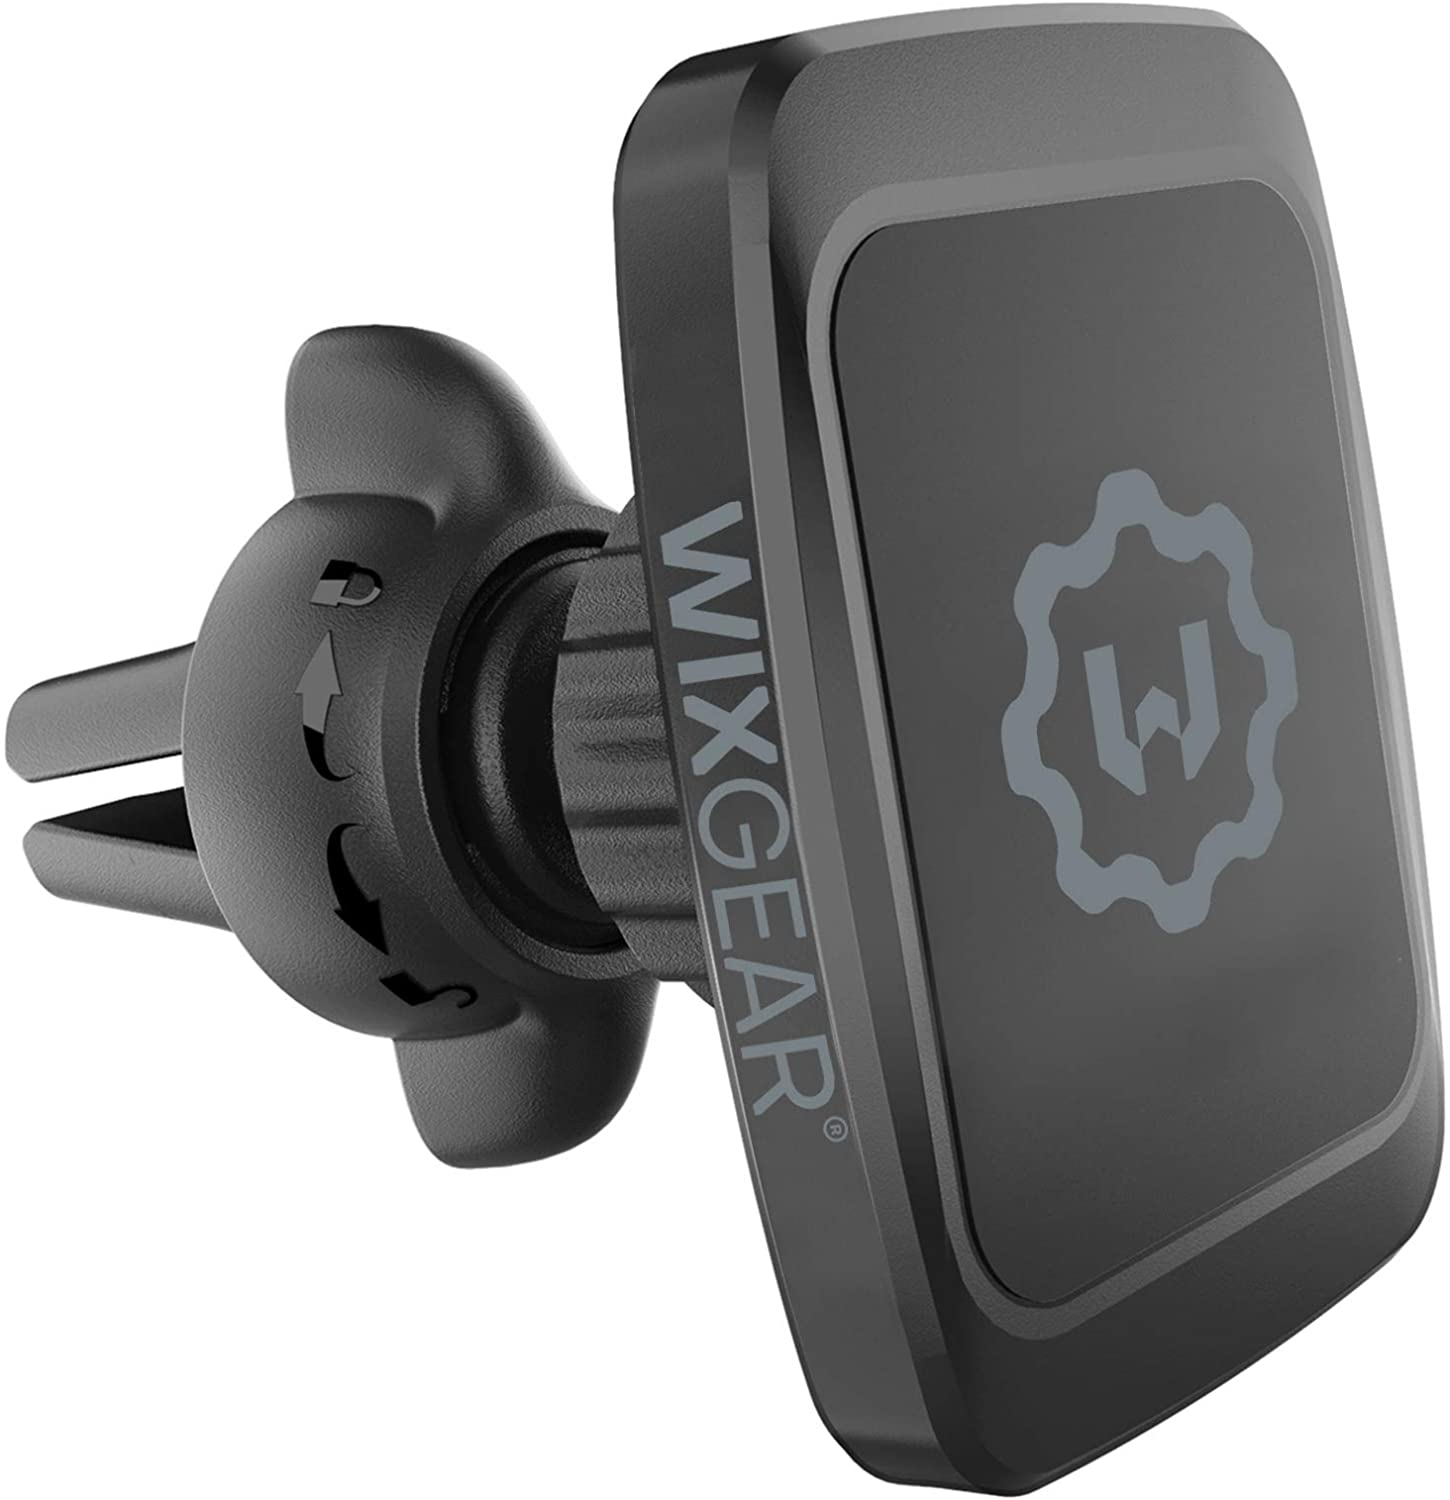 Wixgear Vent Phone Mount Render Cropped